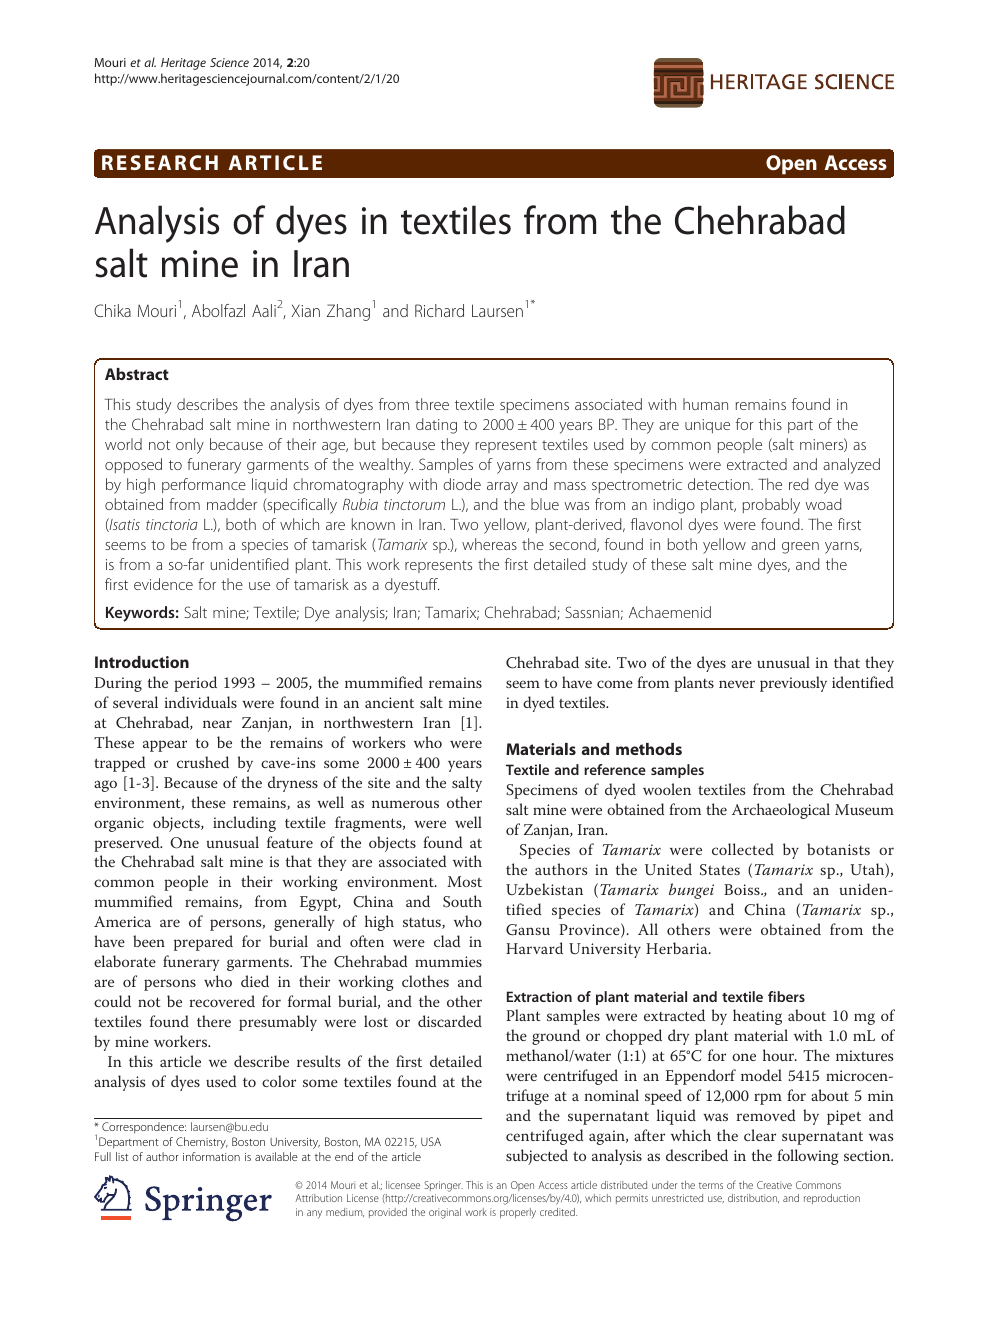 Analysis of dyes in textiles from the Chehrabad salt mine in Iran